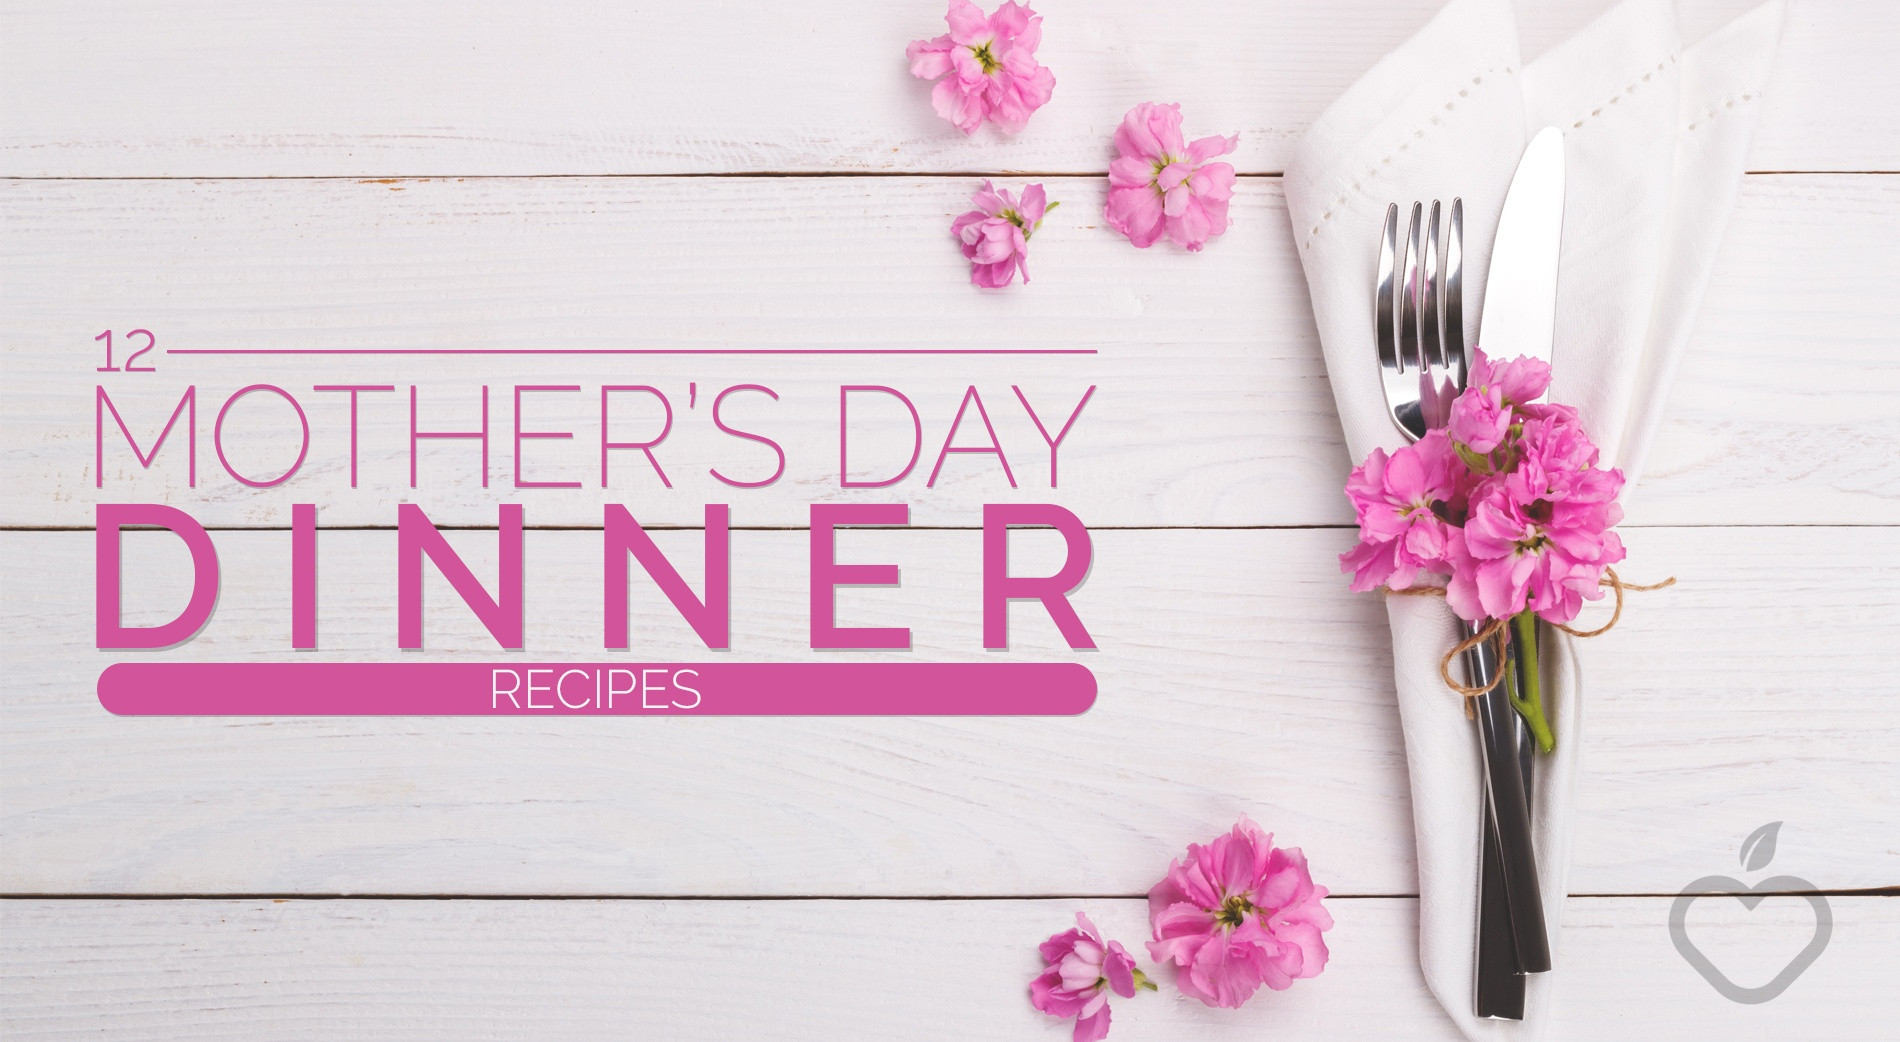 Mothers Day Dinners  12 Mother s Day Dinner Recipes